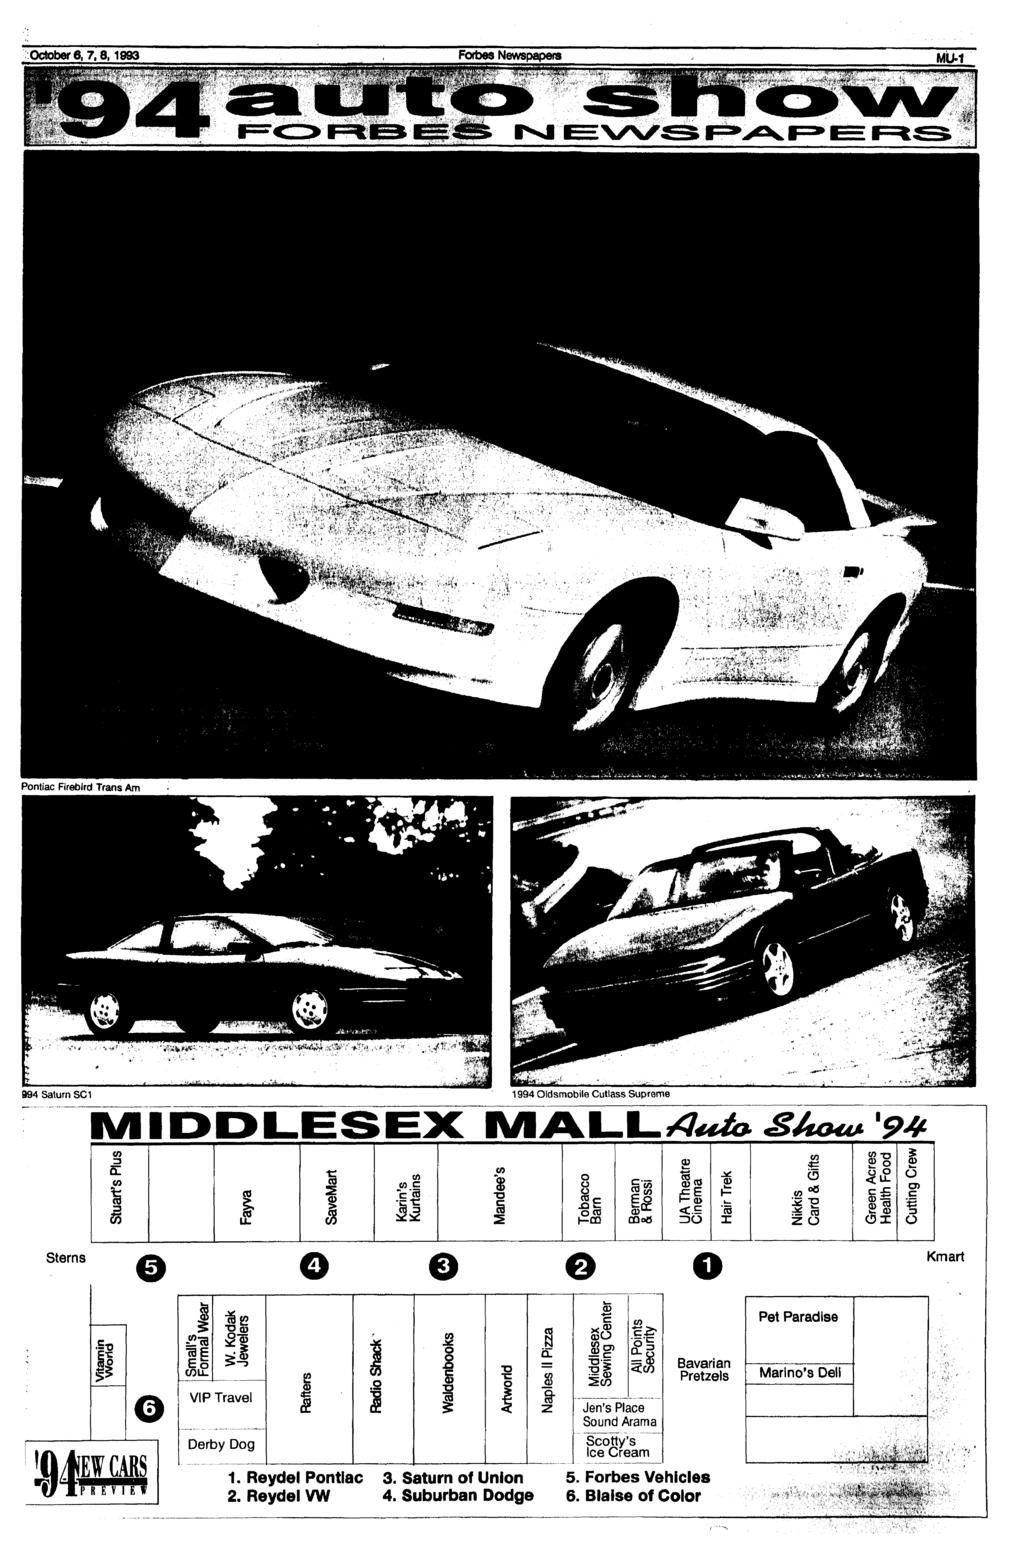 October 6,7,8,1993 Forbes Newspapers MLM Pontiac Firebird Trans Am 994 Saturn SC1 1994 Oldsmobile Cutlass Supreme IM IDDLESEX MALL SAou tuarf s Rus (0 I i arin's urtains andee's Dbacco am erman Rossi